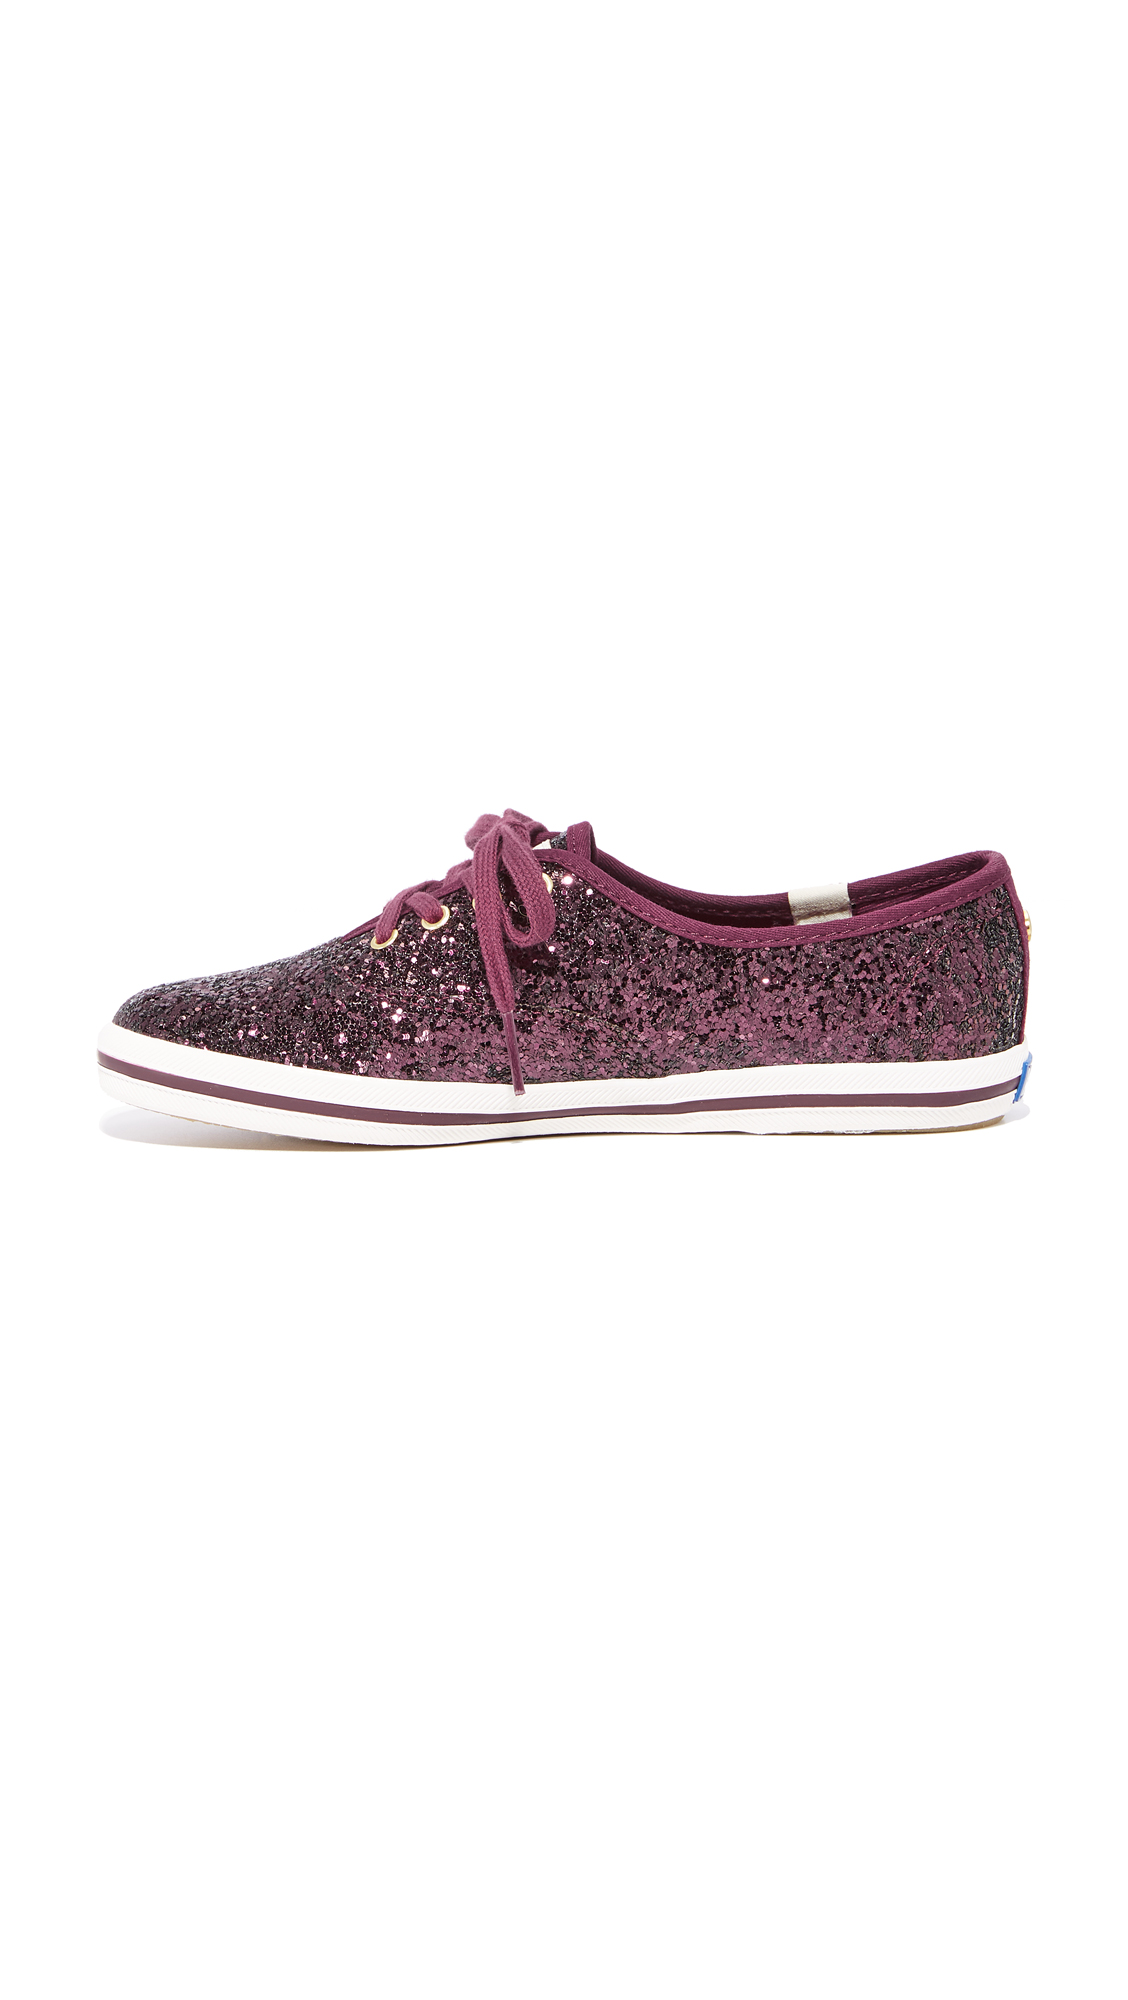 946d2164a737 Keds x Kate Spade New York Glitter Sneakers